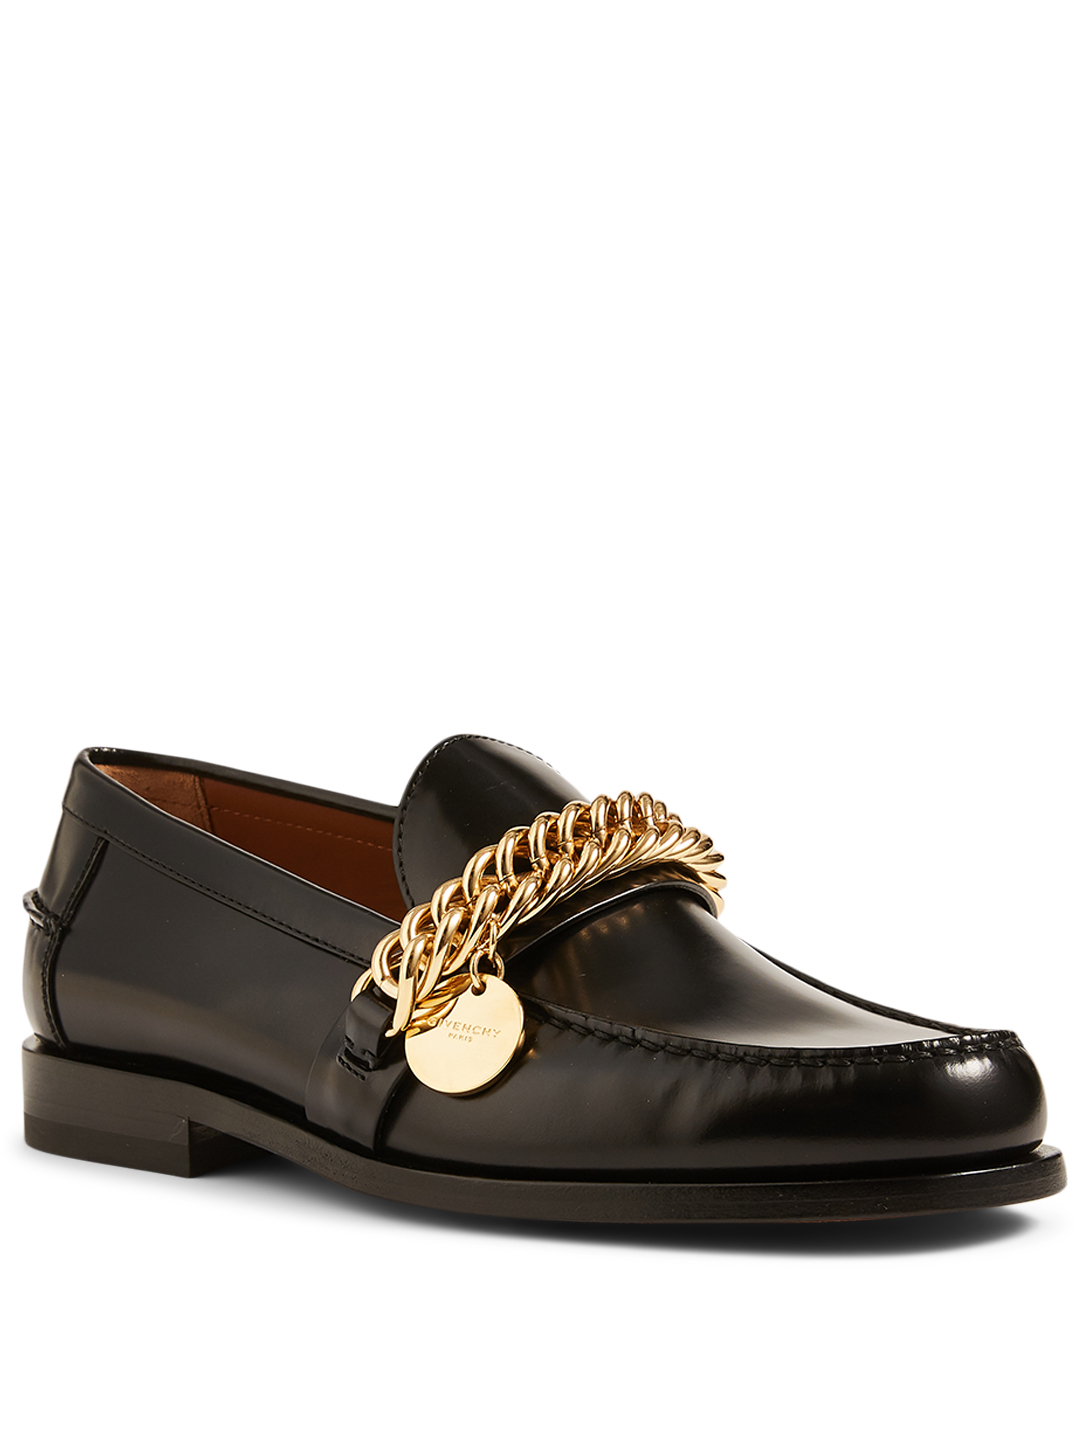 GIVENCHY Leather Loafers With Chain Women's Black